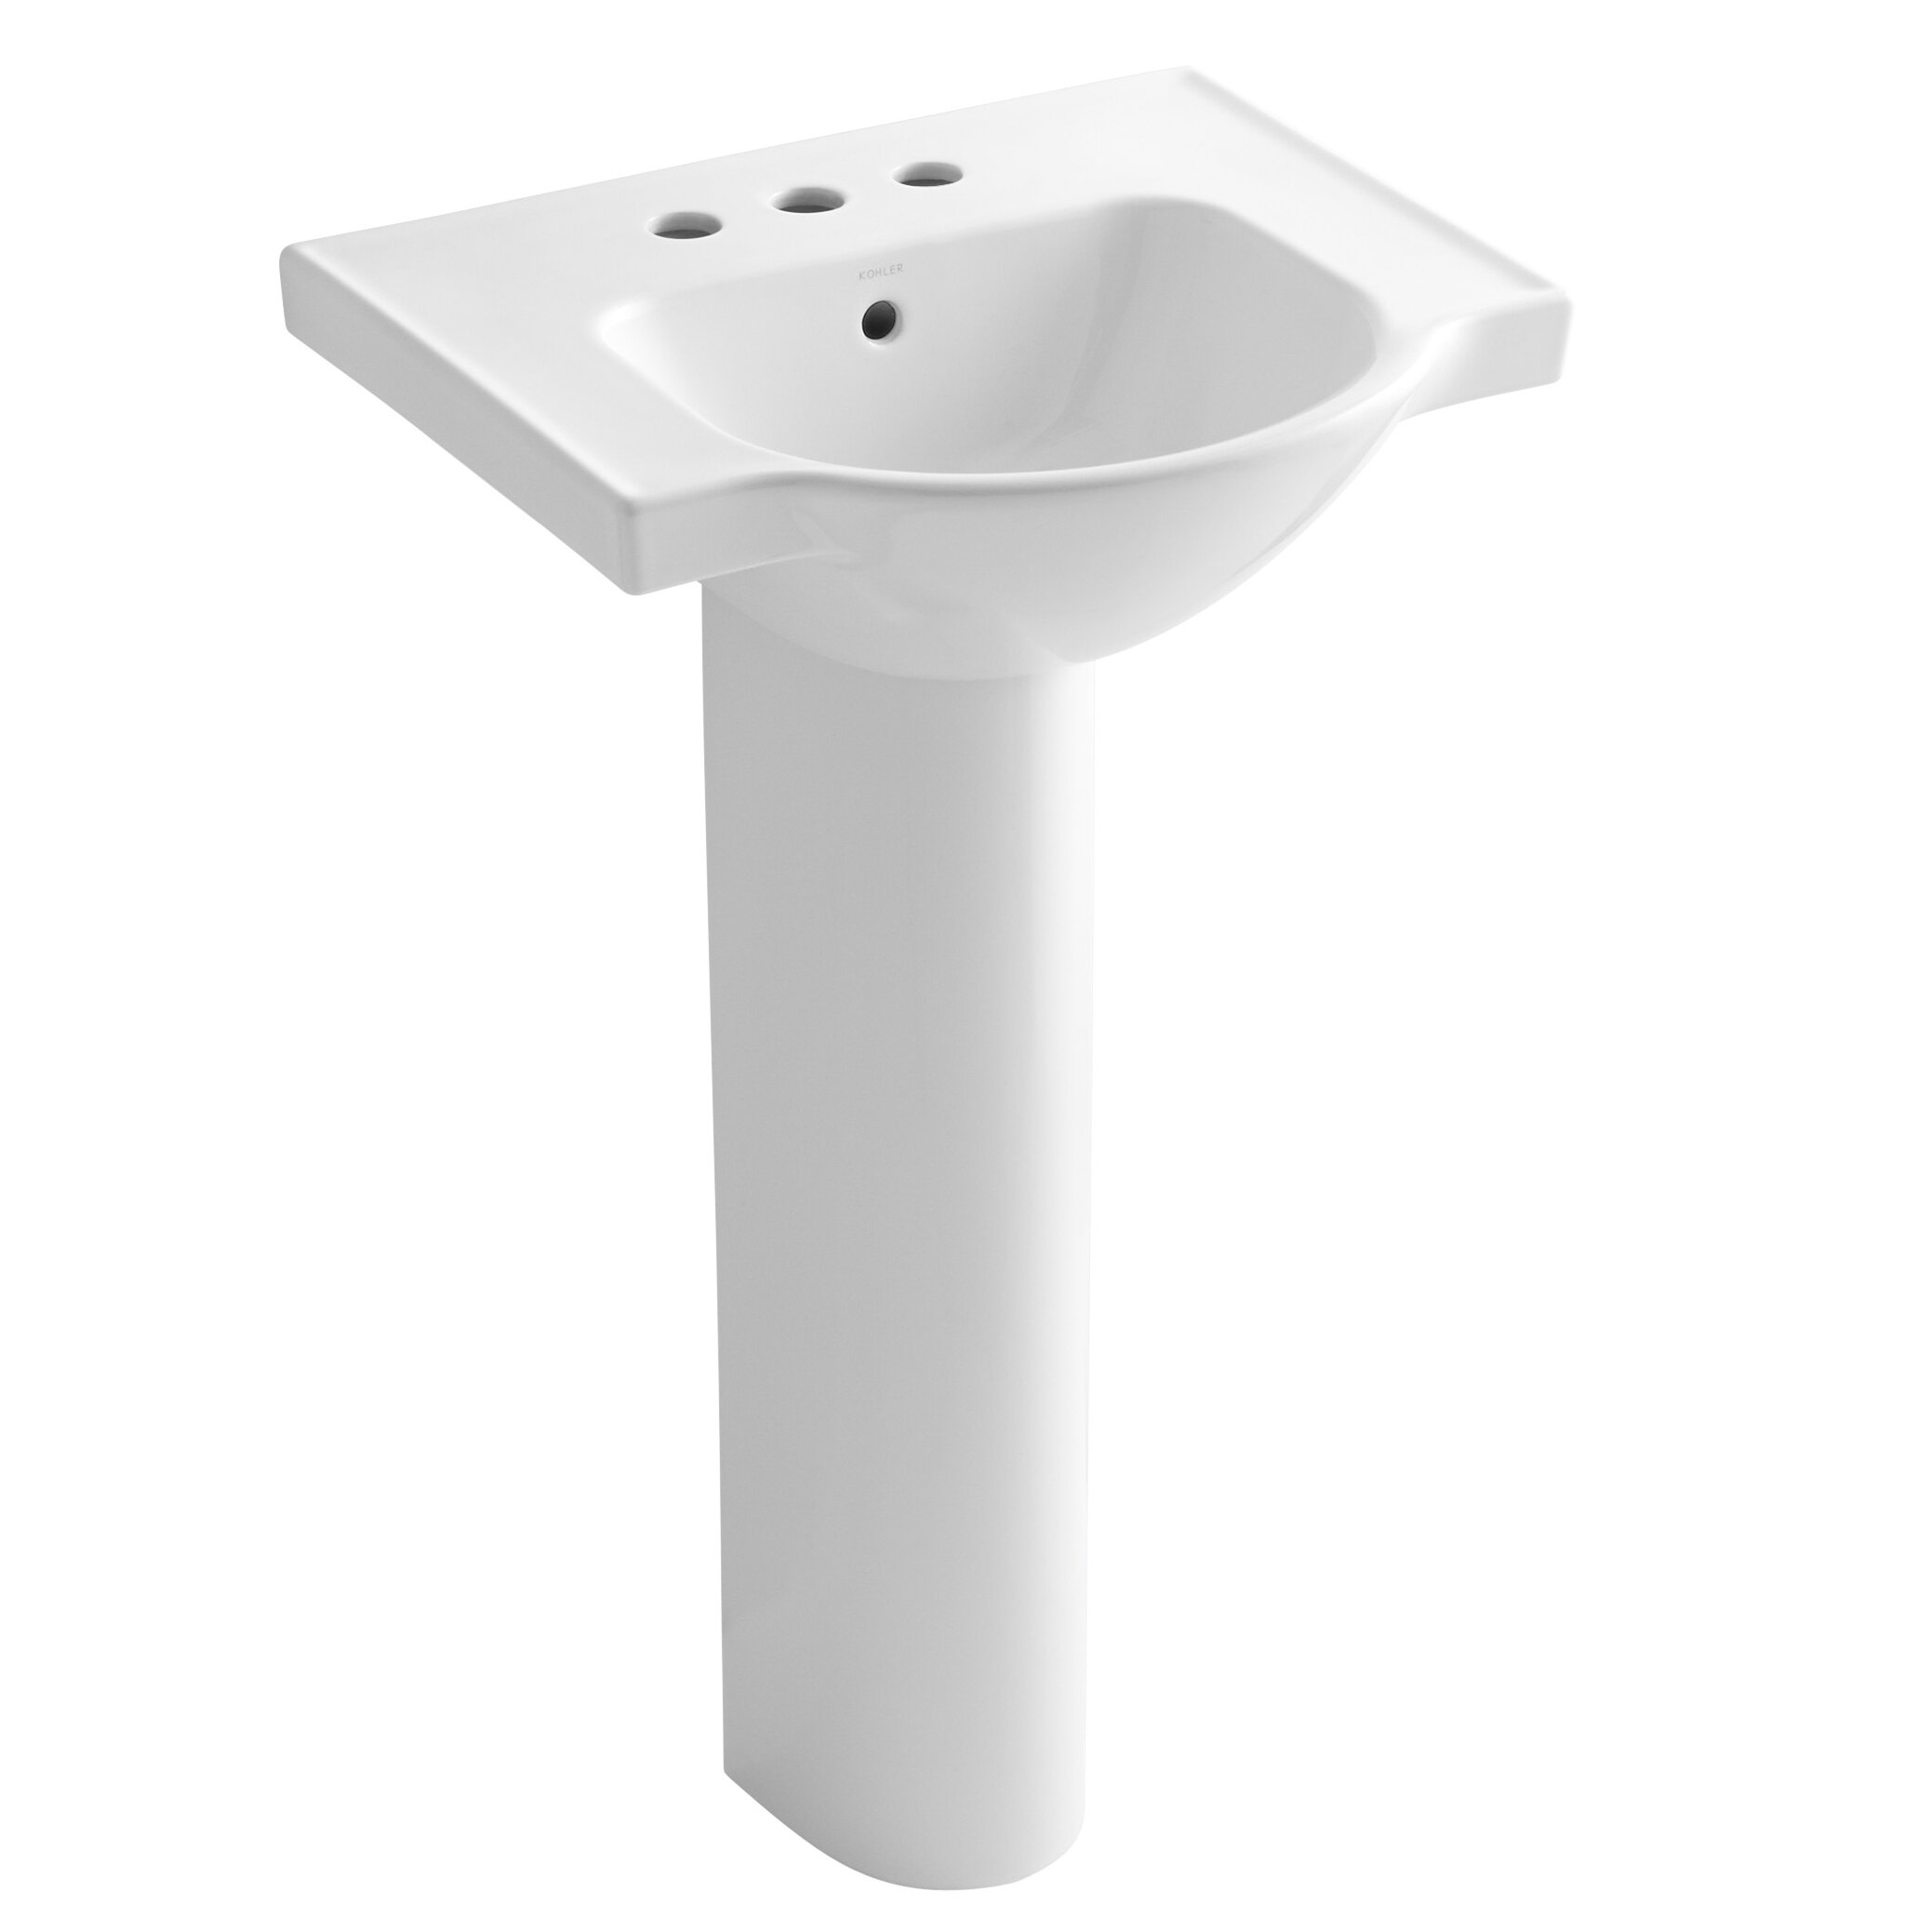 Kohler Veer 24 Pedestal Bathroom Sink Reviews Wayfair